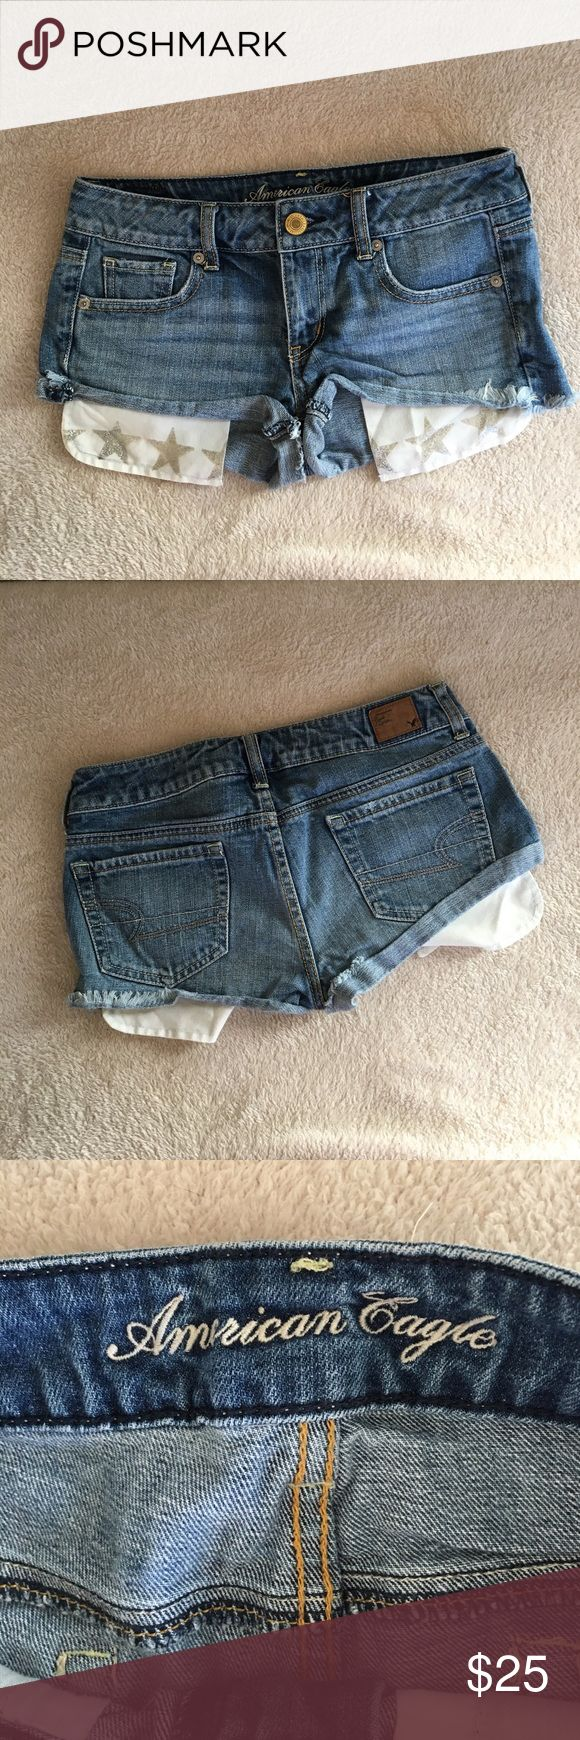 American eagle shorts American eagle brand size 2 Jean shorts size with stars on the bottom of the pockets. Waist is 30 inches front rise is 7 inches back rise is 12 inches. 100% cotton. Excellent condition American Eagle Outfitters Shorts Jean Shorts